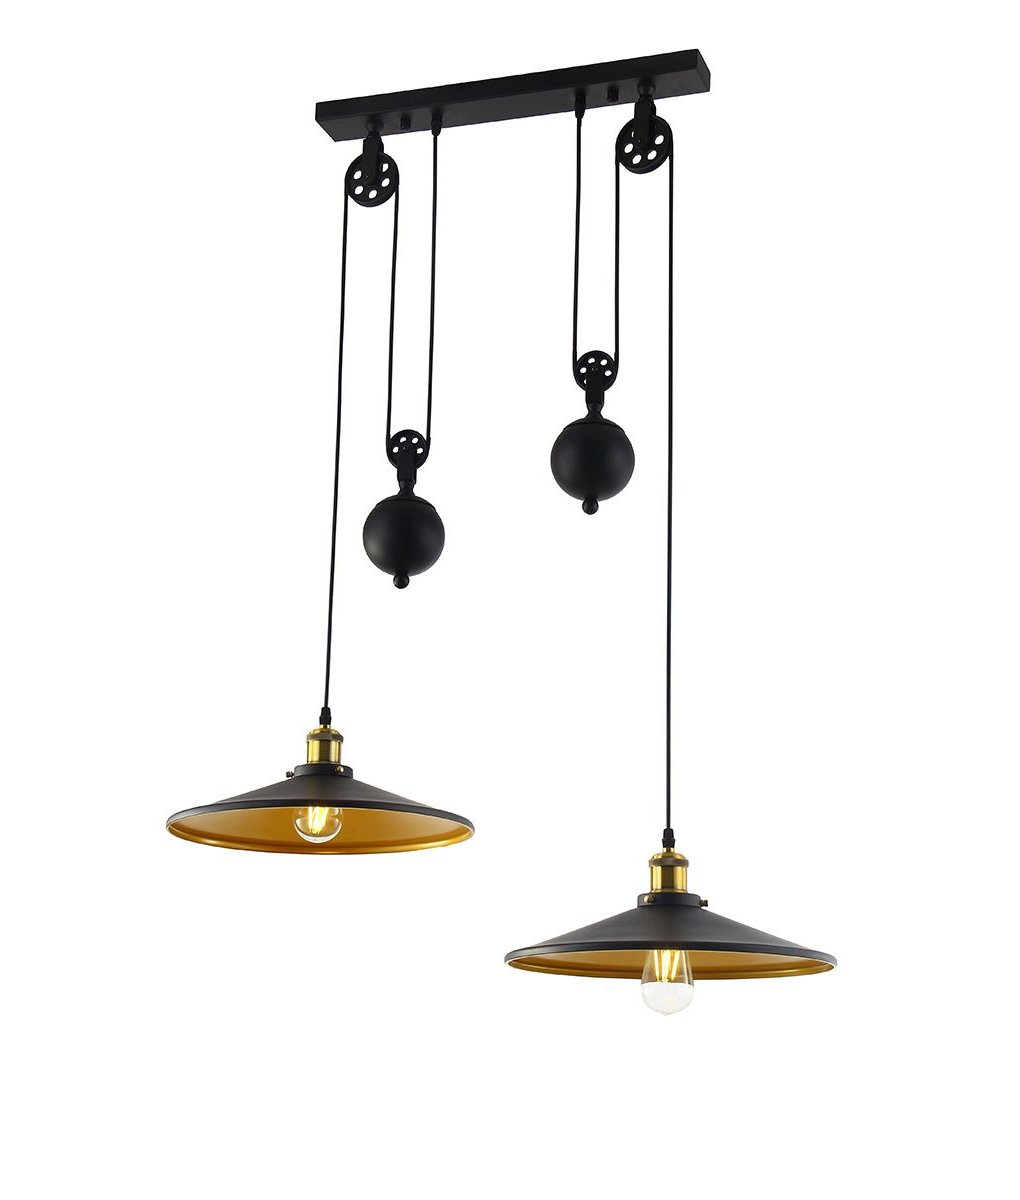 2019 A Metal Rise And Fall Pendant Ideal For Dining Tables Or Regarding Ariel 3 Light Kitchen Island Dome Pendants (View 1 of 25)